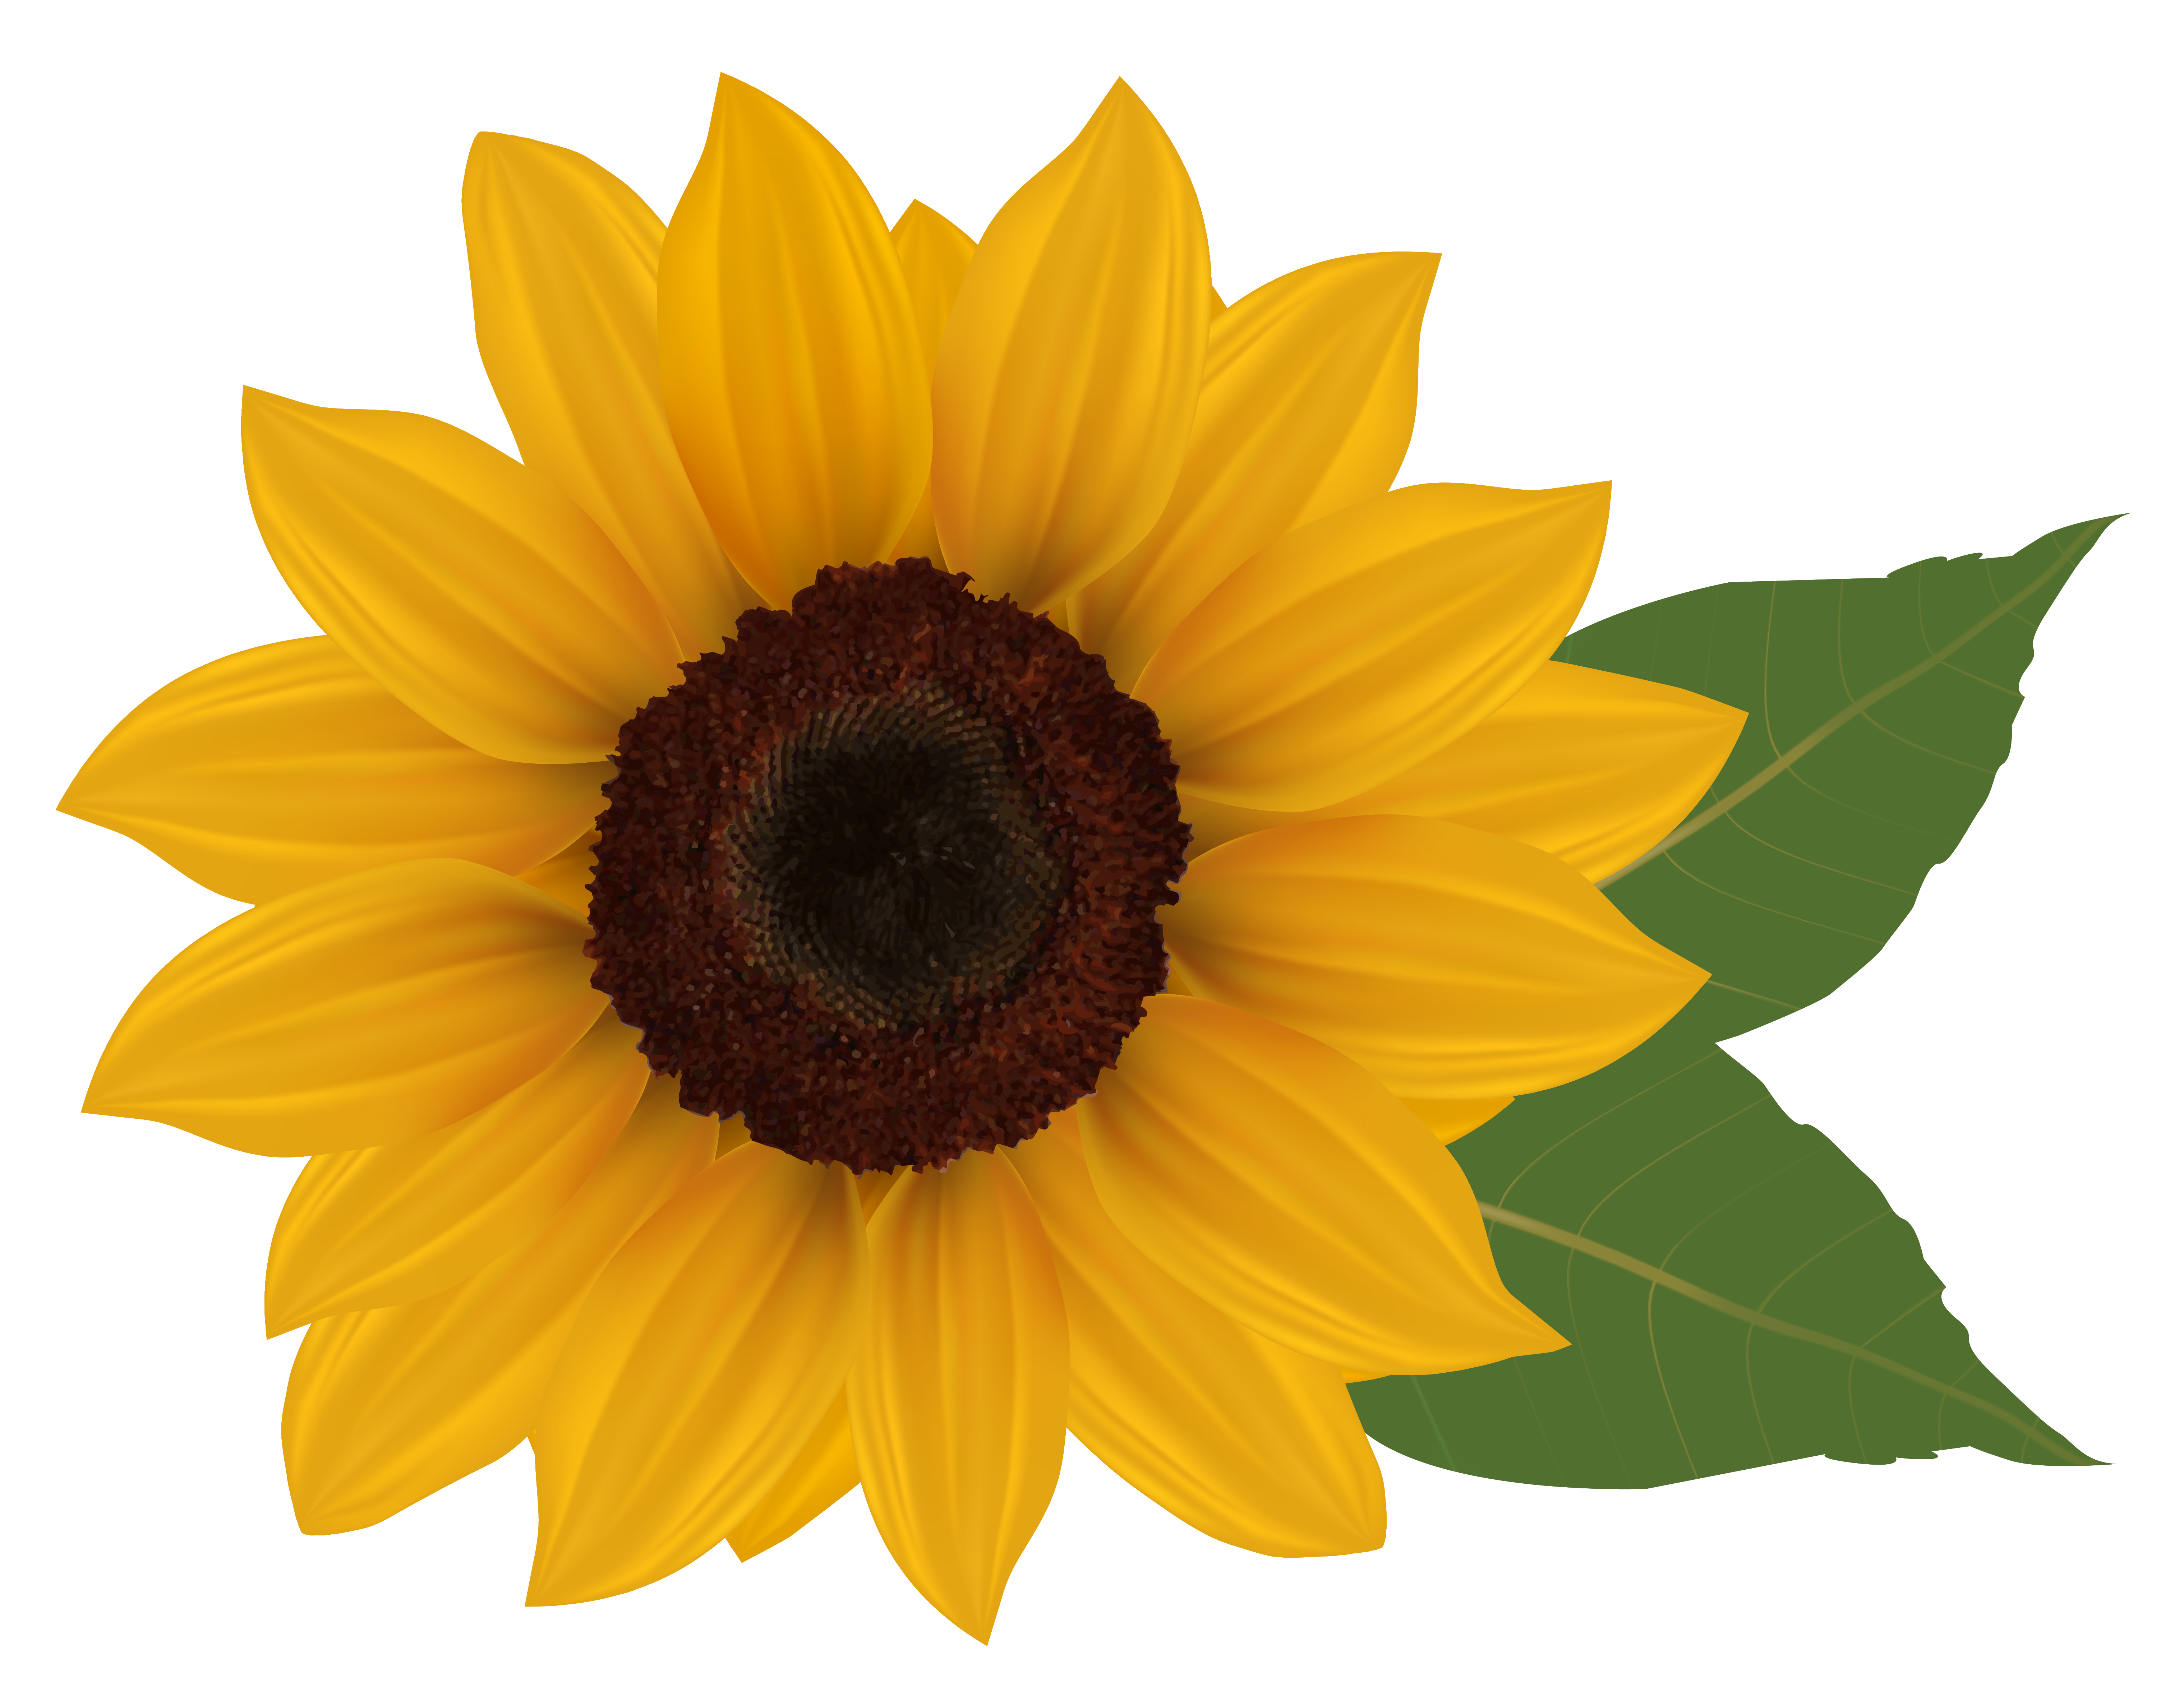 6078x4682 Sunflower Png Clipart Pictureu200b Gallery Yopriceville